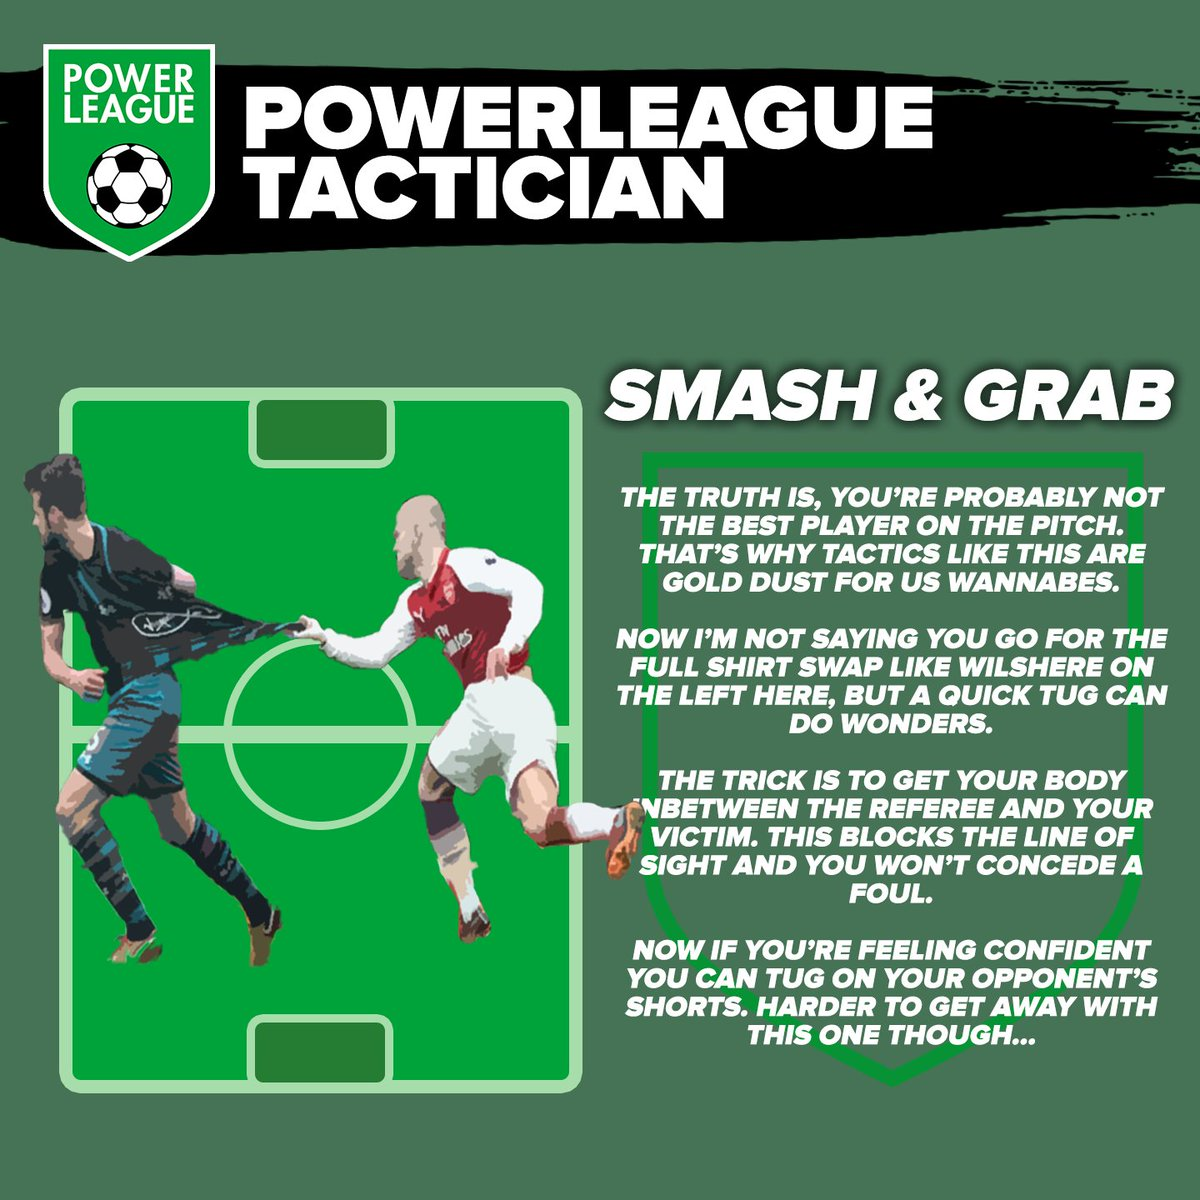 Bored at home? Don't worry! This tactic you can practice around the house, and by the time we're back open, you'll be an expert! #PowerleagueTactician #PLAYON